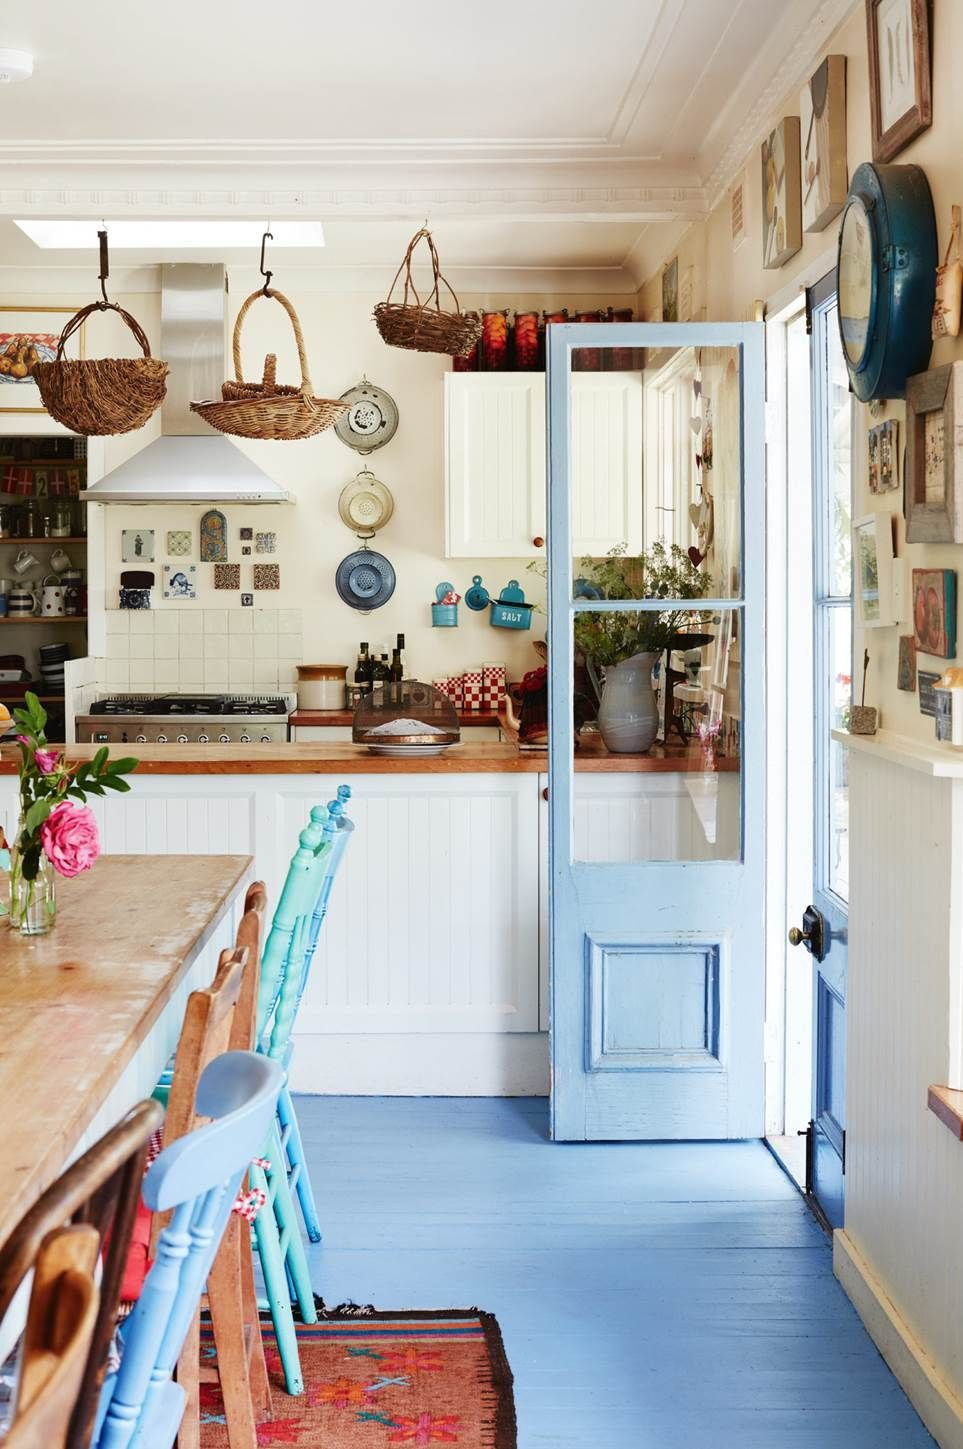 Country kitchens emanate warmth and homeliness. Be inspired to create the rural kitchen of your dreams with our gallery of 20 kitchens from Country Style magazine. Dont forget to add some antique crockery, silverware and a vase of freshly picked flowers to complete the look!